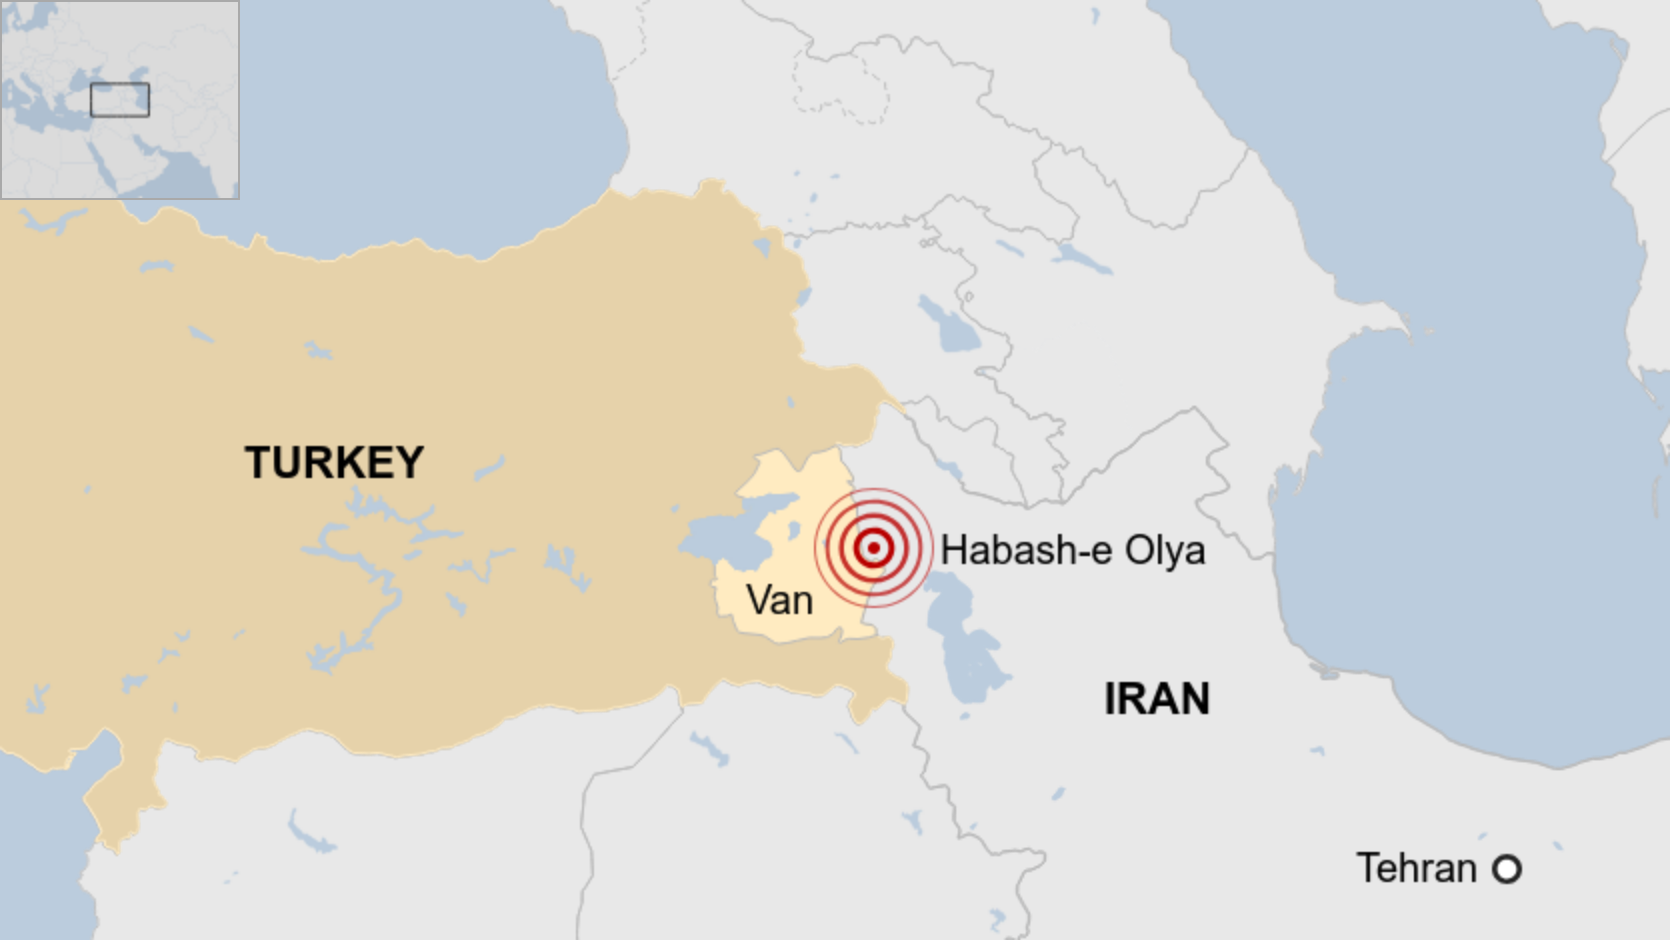 The earthquake caused damage on both sides of the Turkey-Iran border